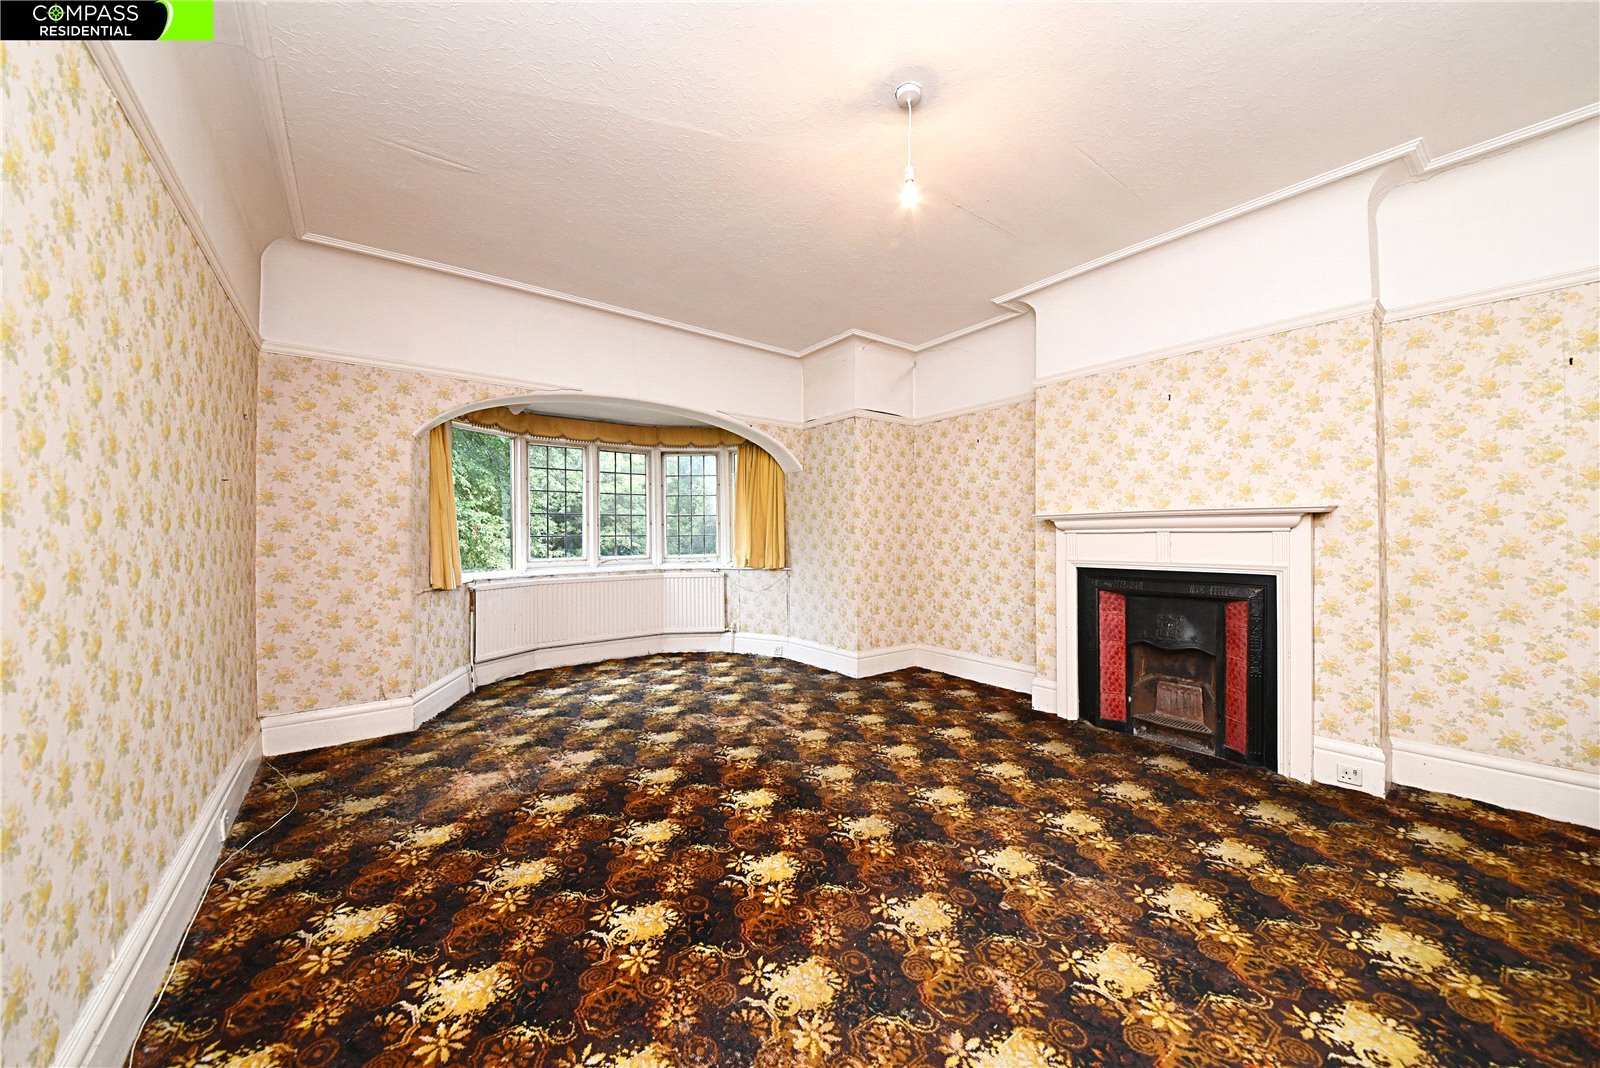 6 bed house for sale in Whetstone, N20 0NN 2